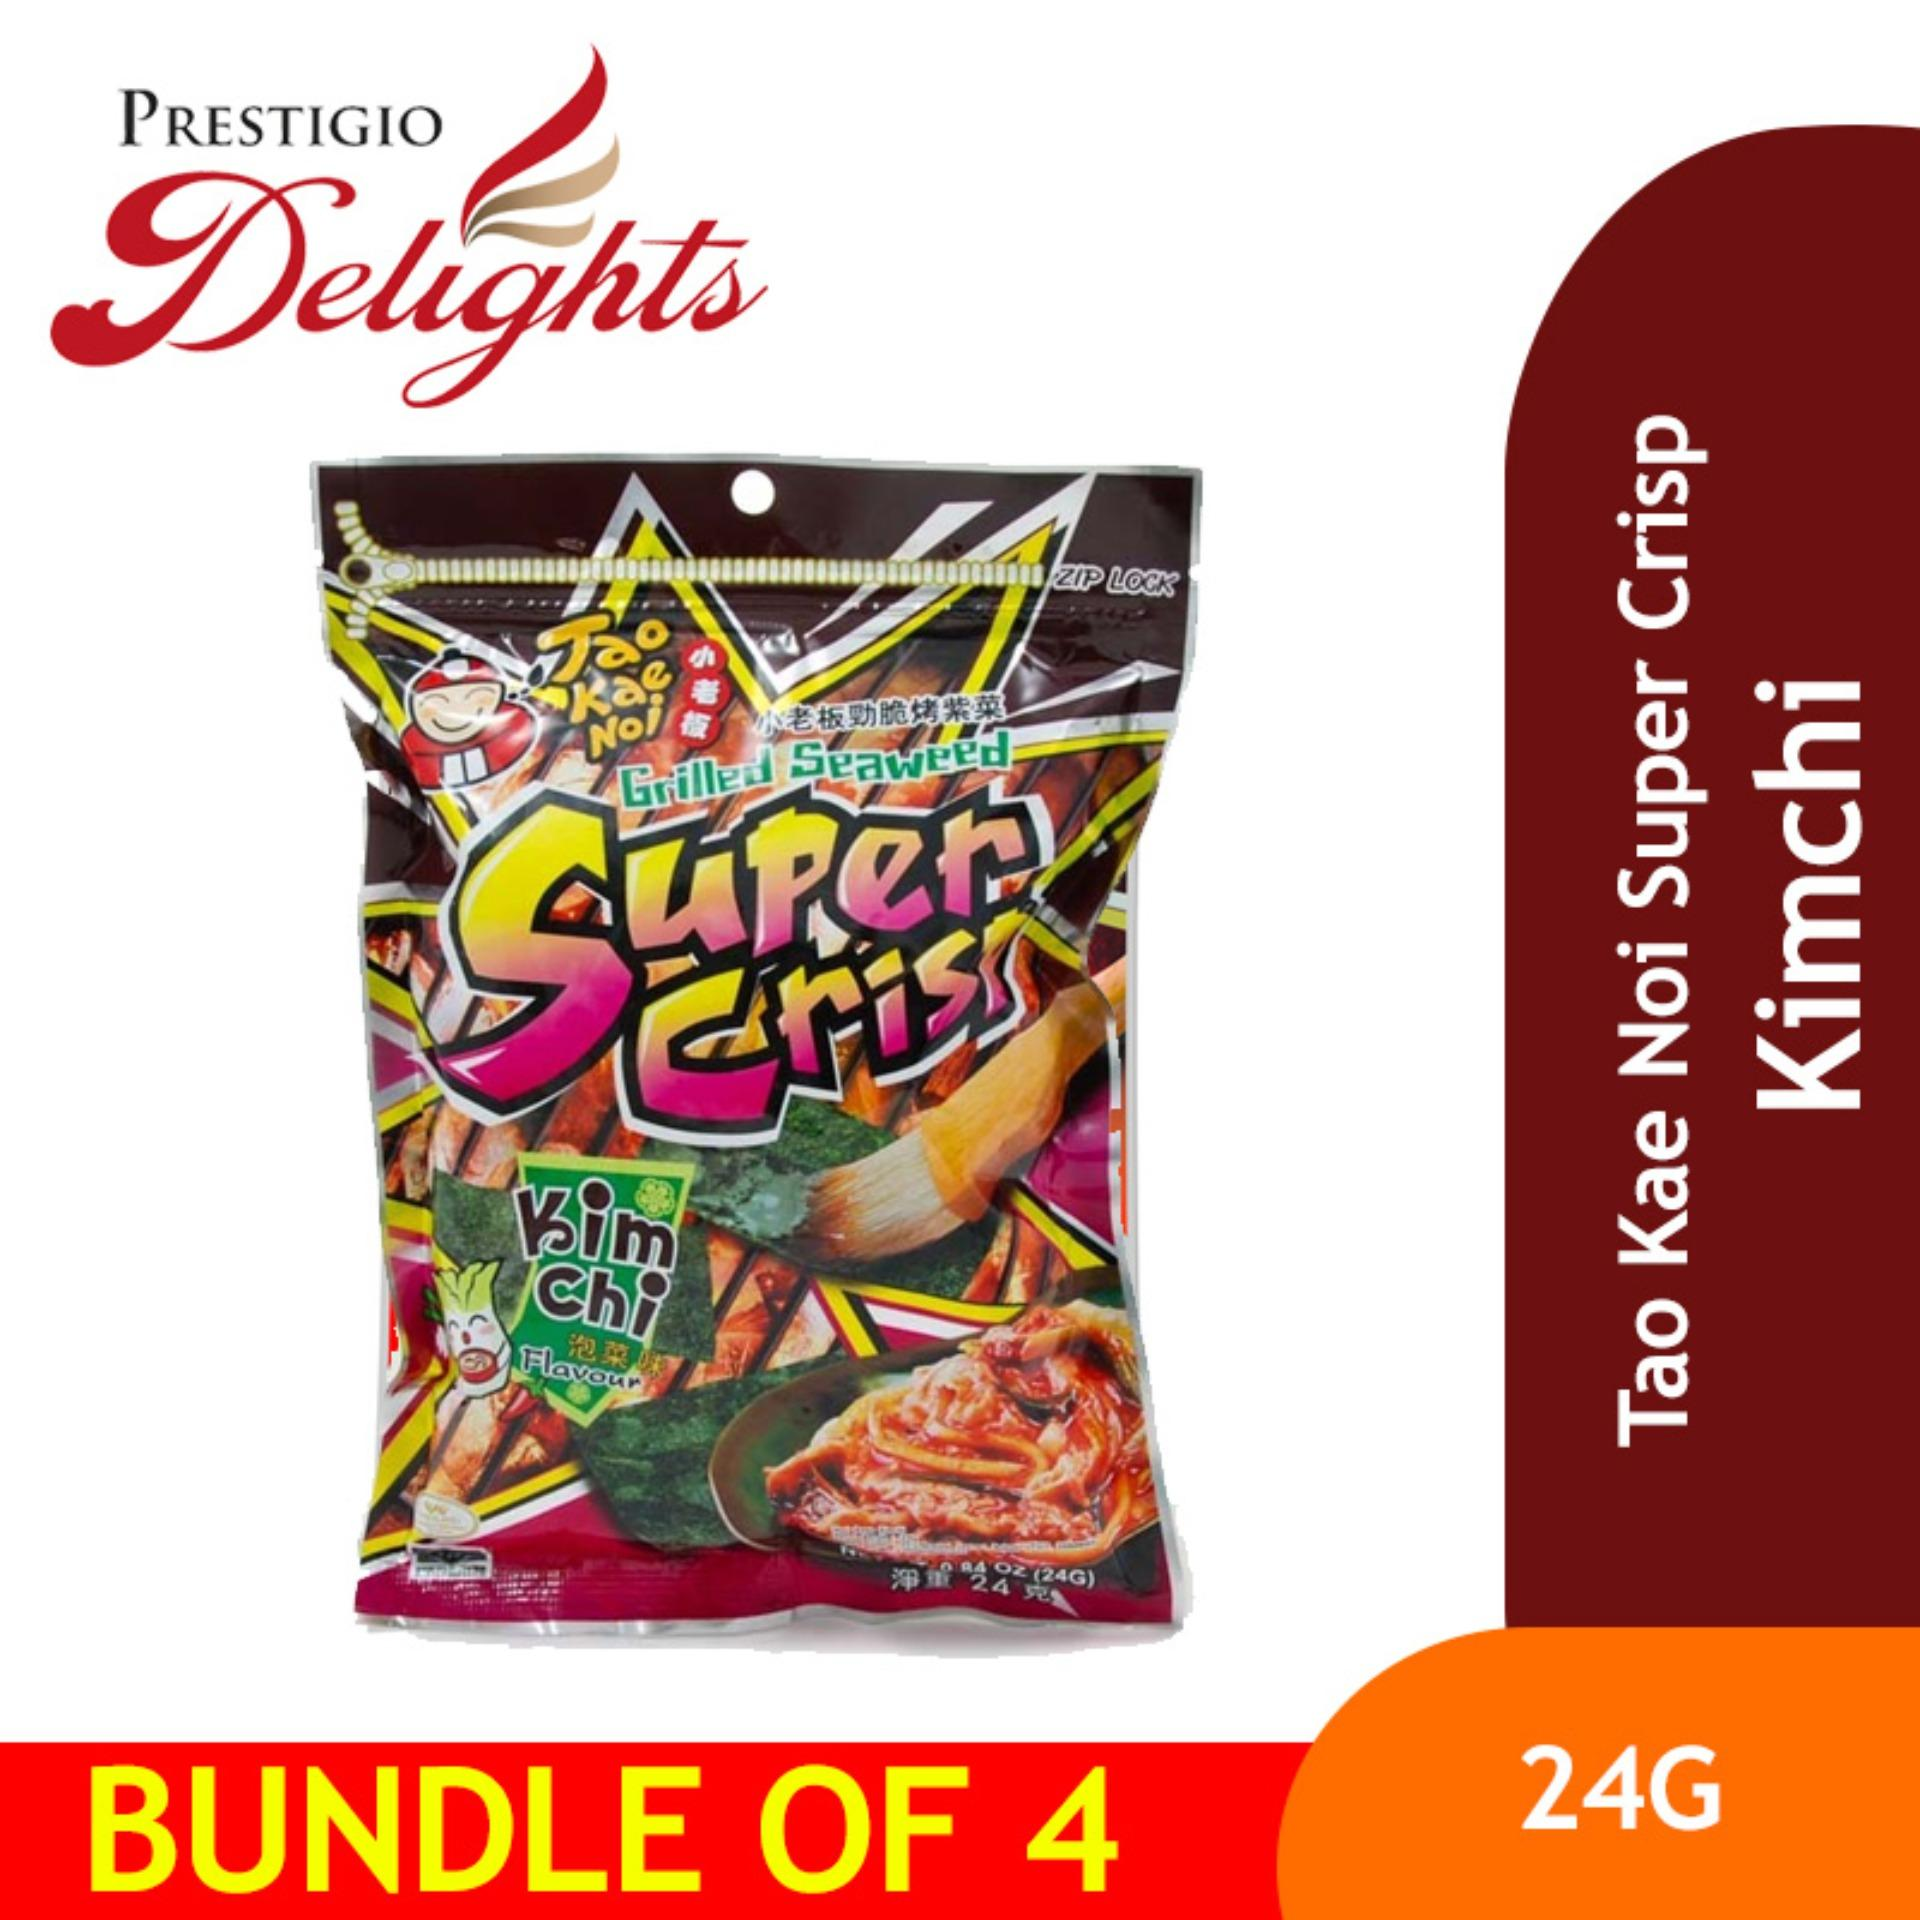 Tao Kae Noi Super Crisp - 24g Kimchi Bundle Of 4 By Prestigio Delights.